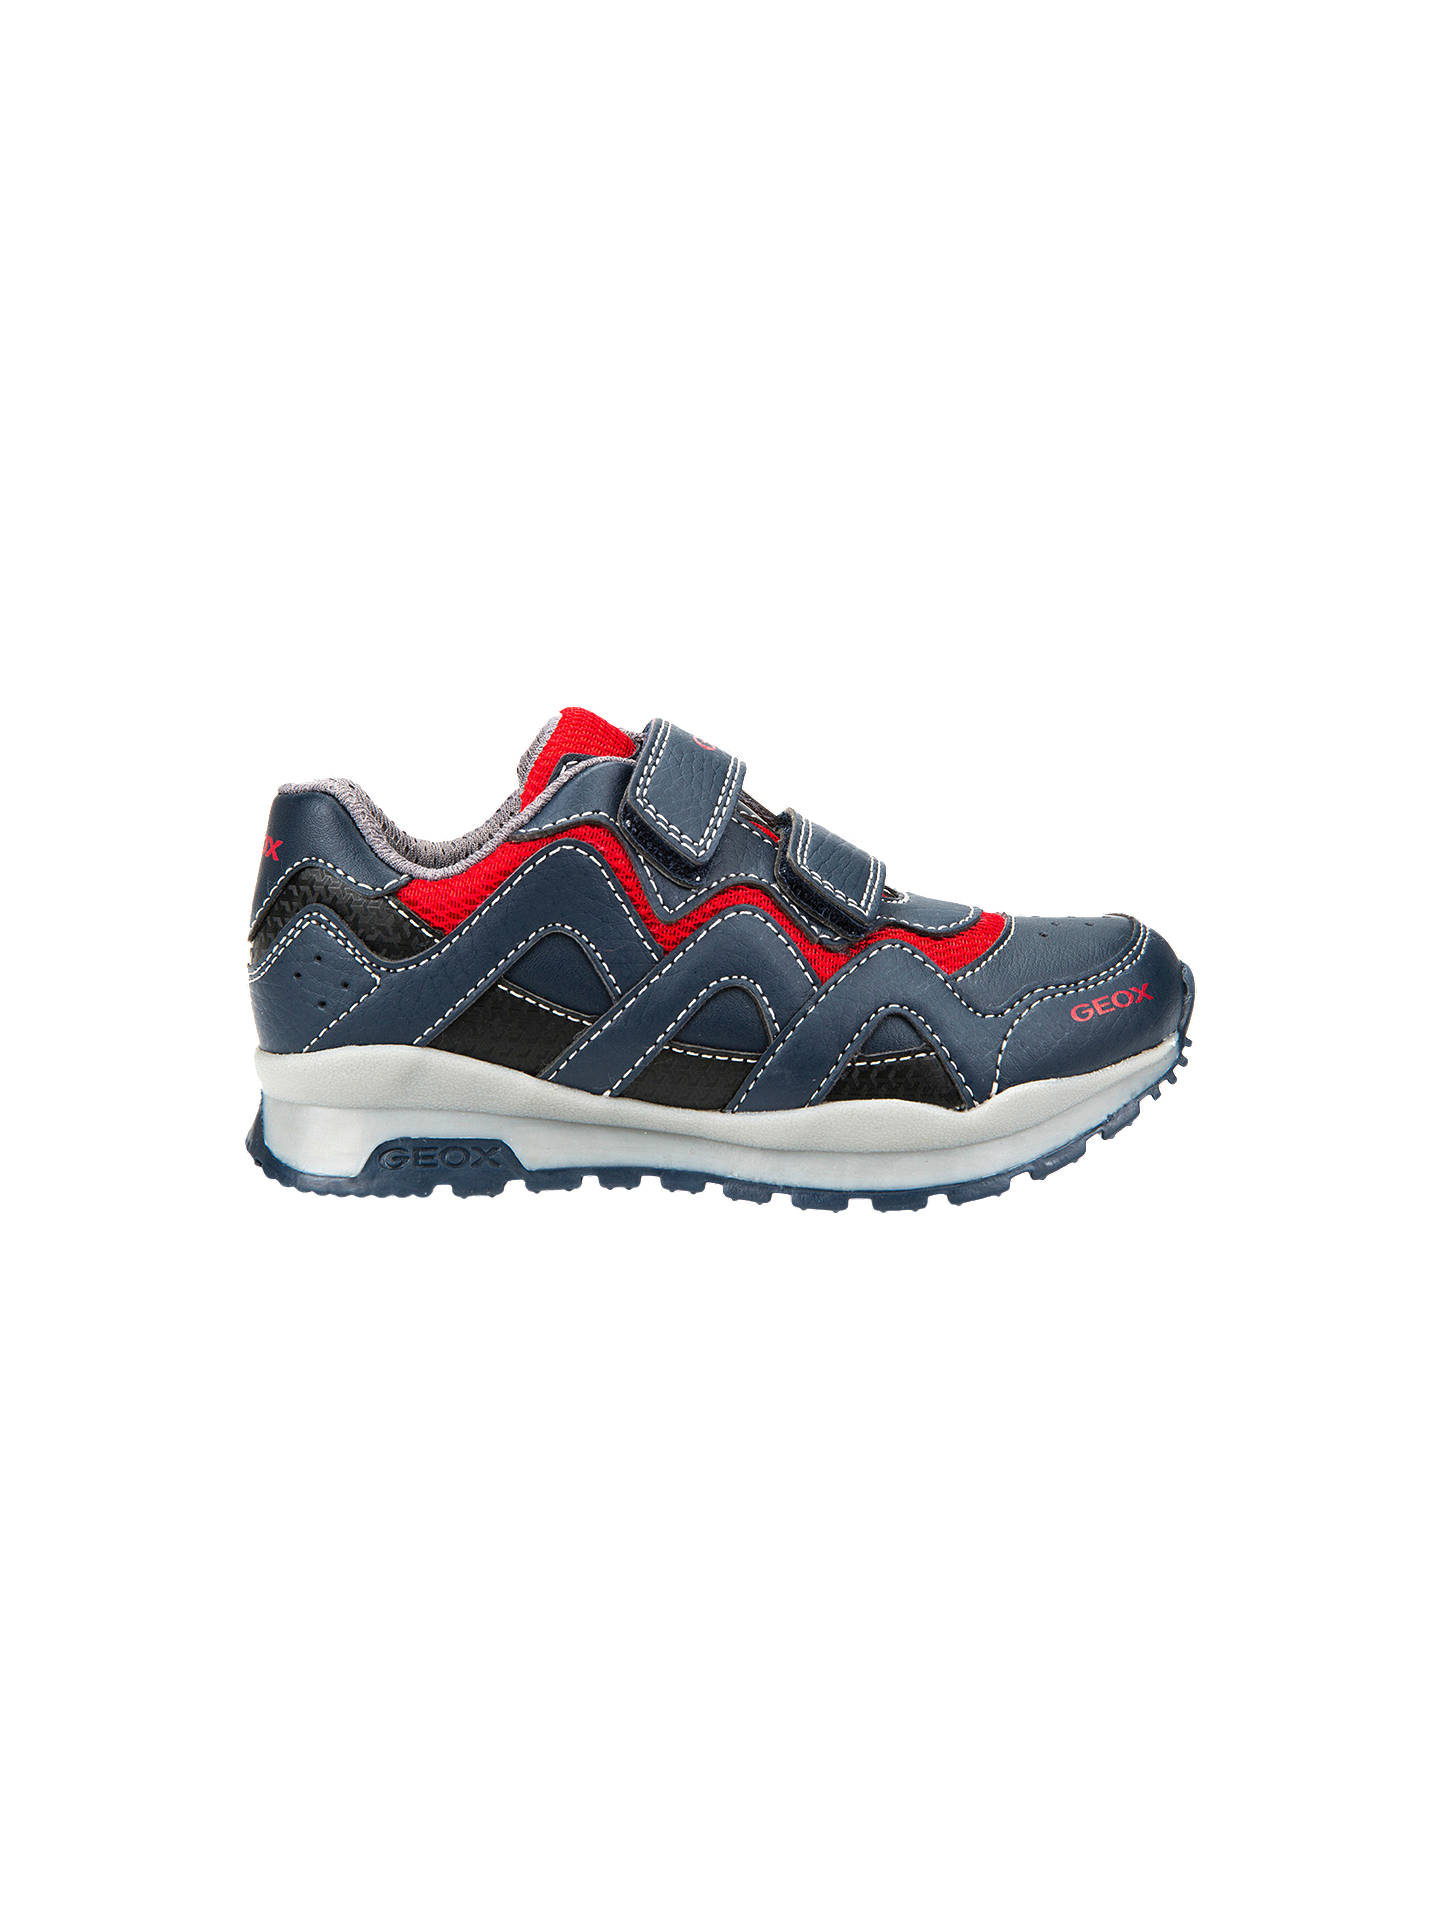 1c6dc7e4cf0e1 Buy Geox Children's Pavel Riptape Trainers, Navy/Red, 26 Online at  johnlewis.